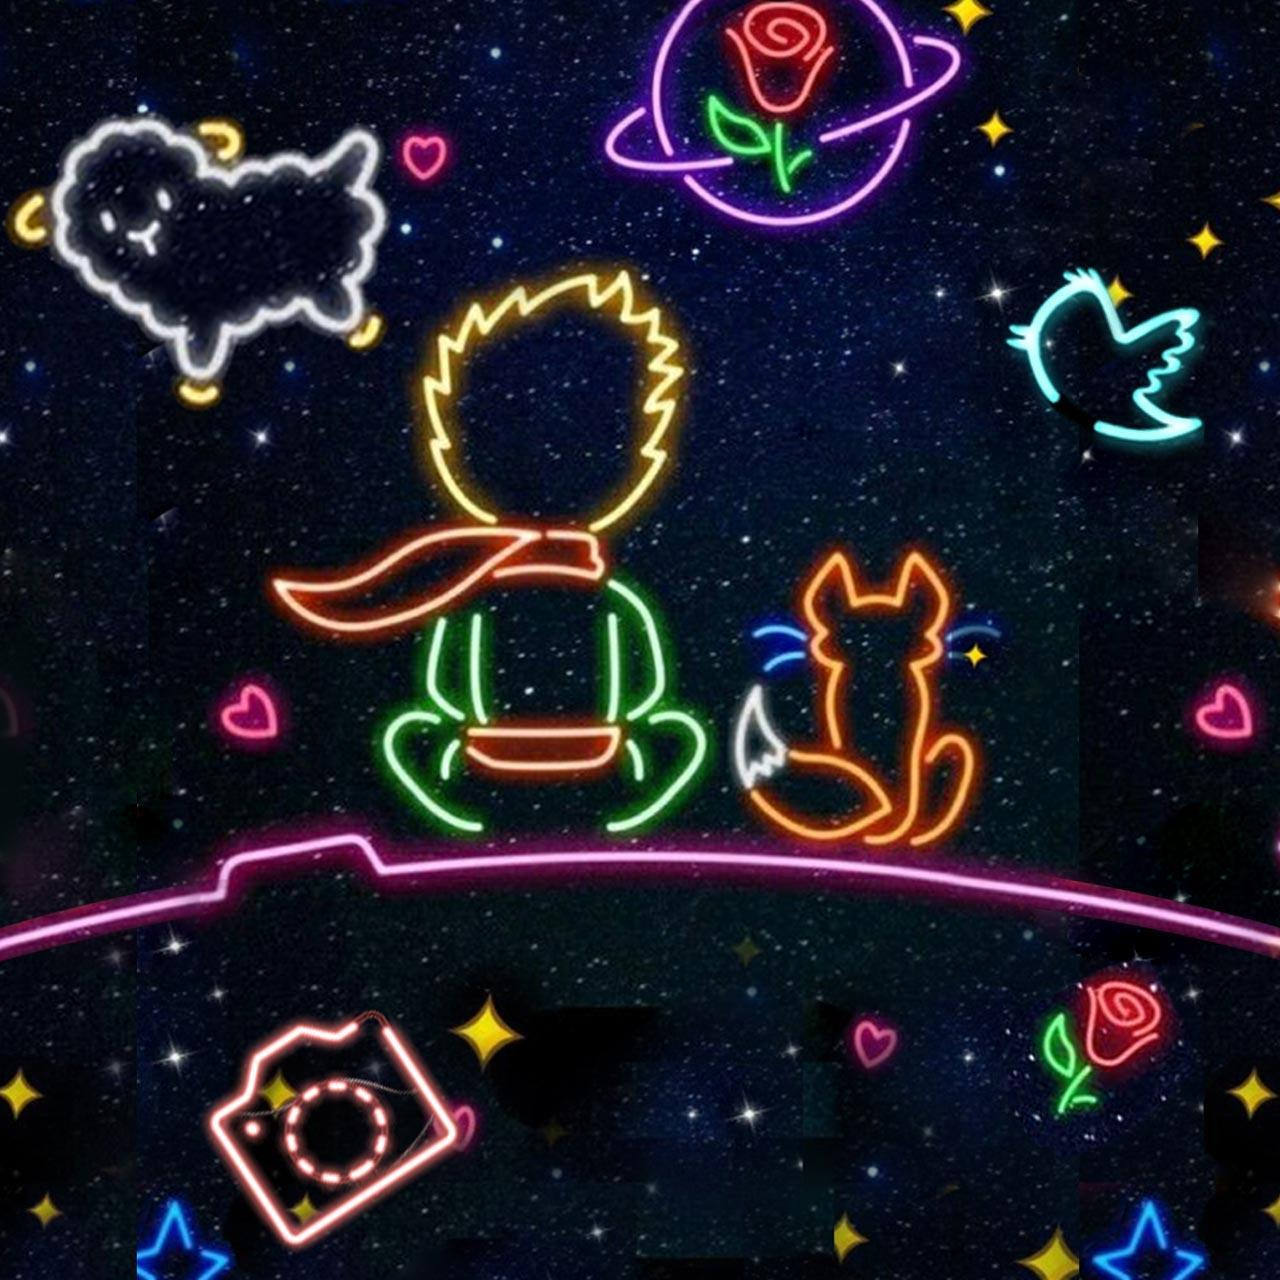 Little Prince Themes Live Wallpaper For Android Apk Download